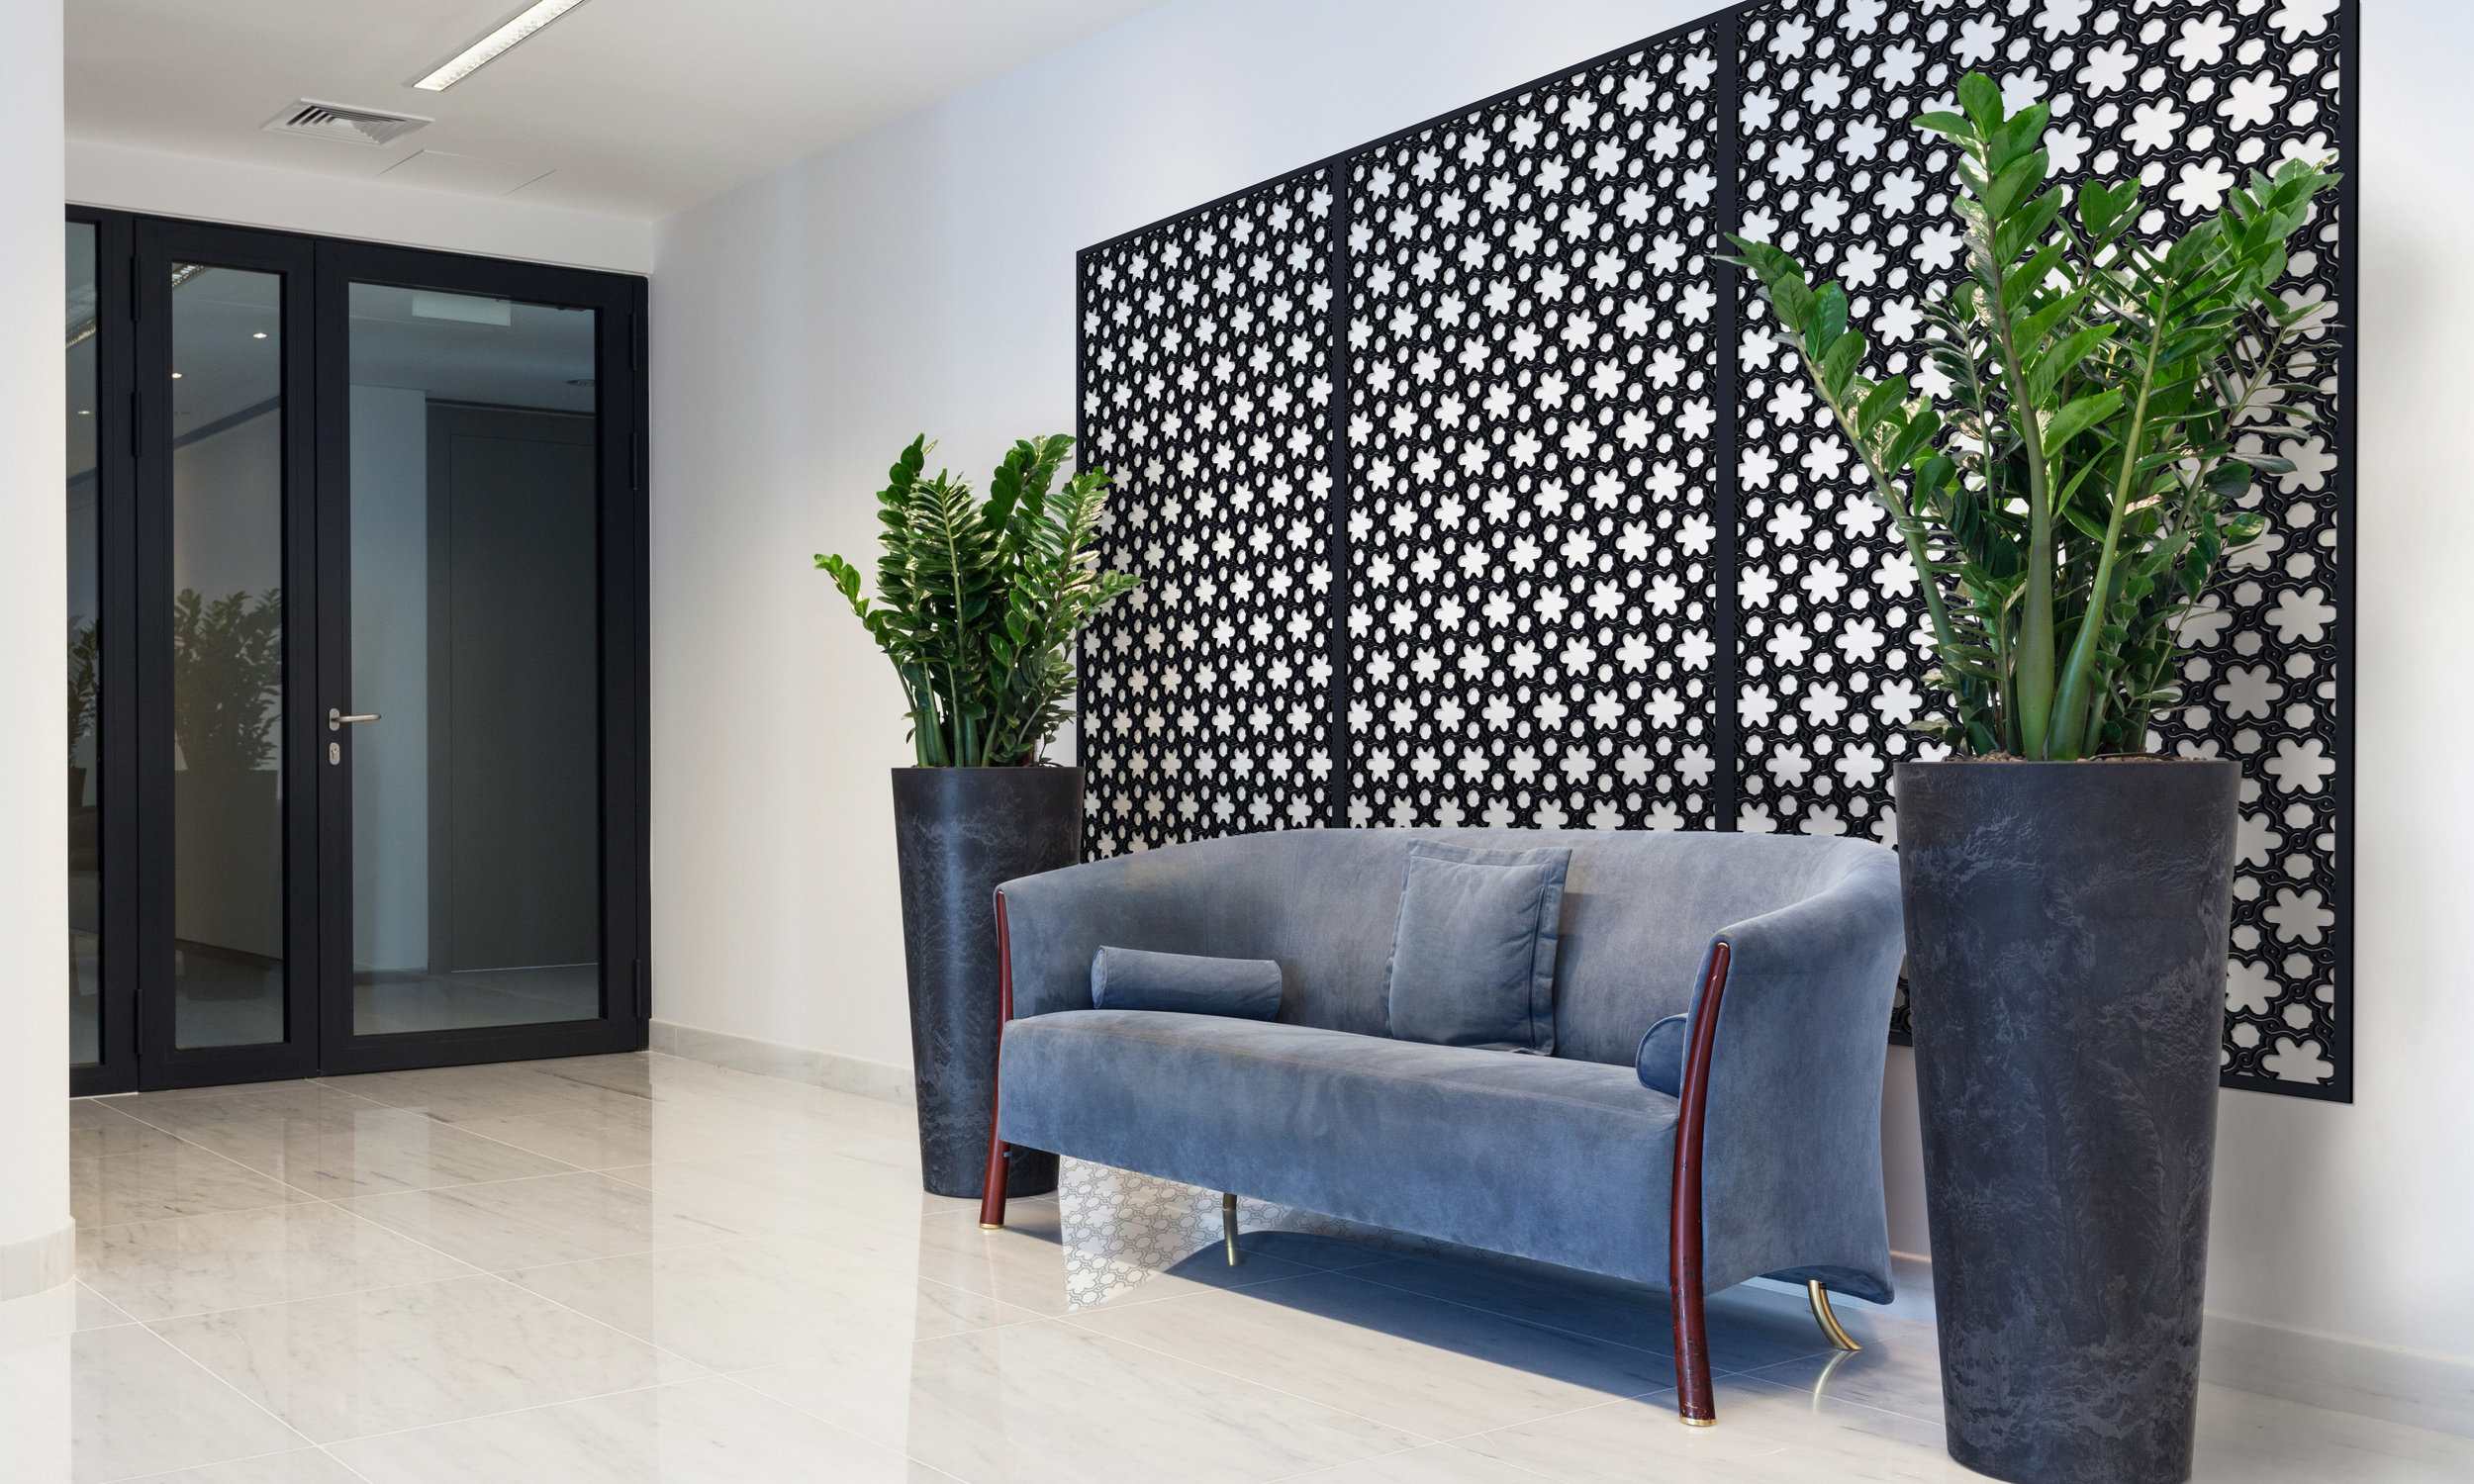 Installation Rendering B   Woven Flowers decorative office wall panel - painted